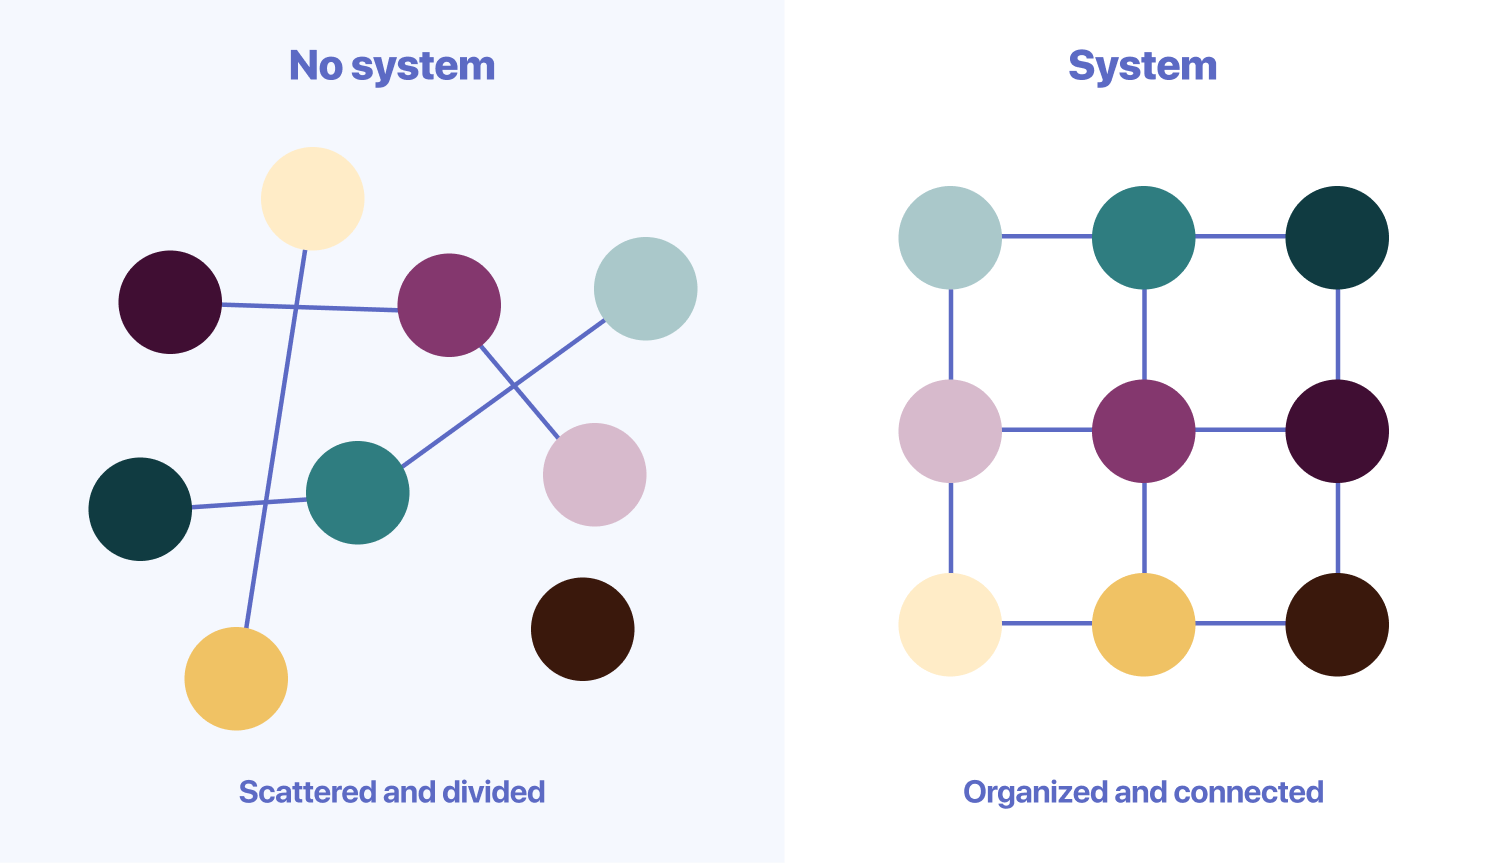 A system organizes and connect all colors.